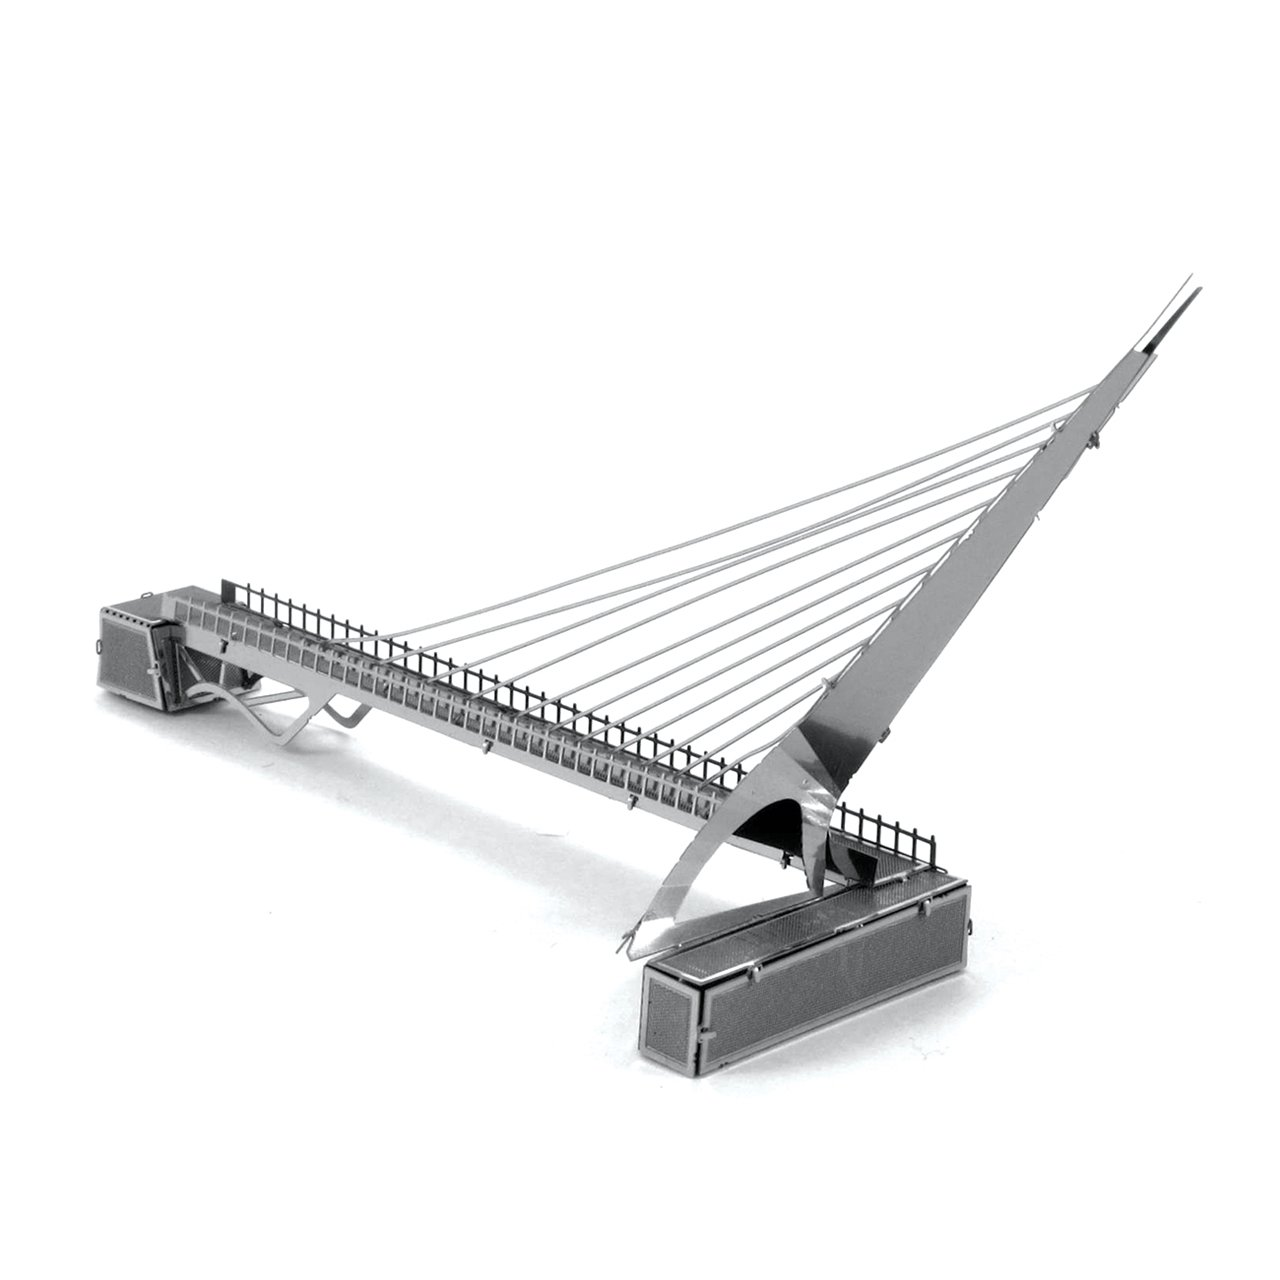 Fascinations MMS031 /502571 Metal Earth Sundial Bridge Construction Toy/1/Metal Plate Ages 14+